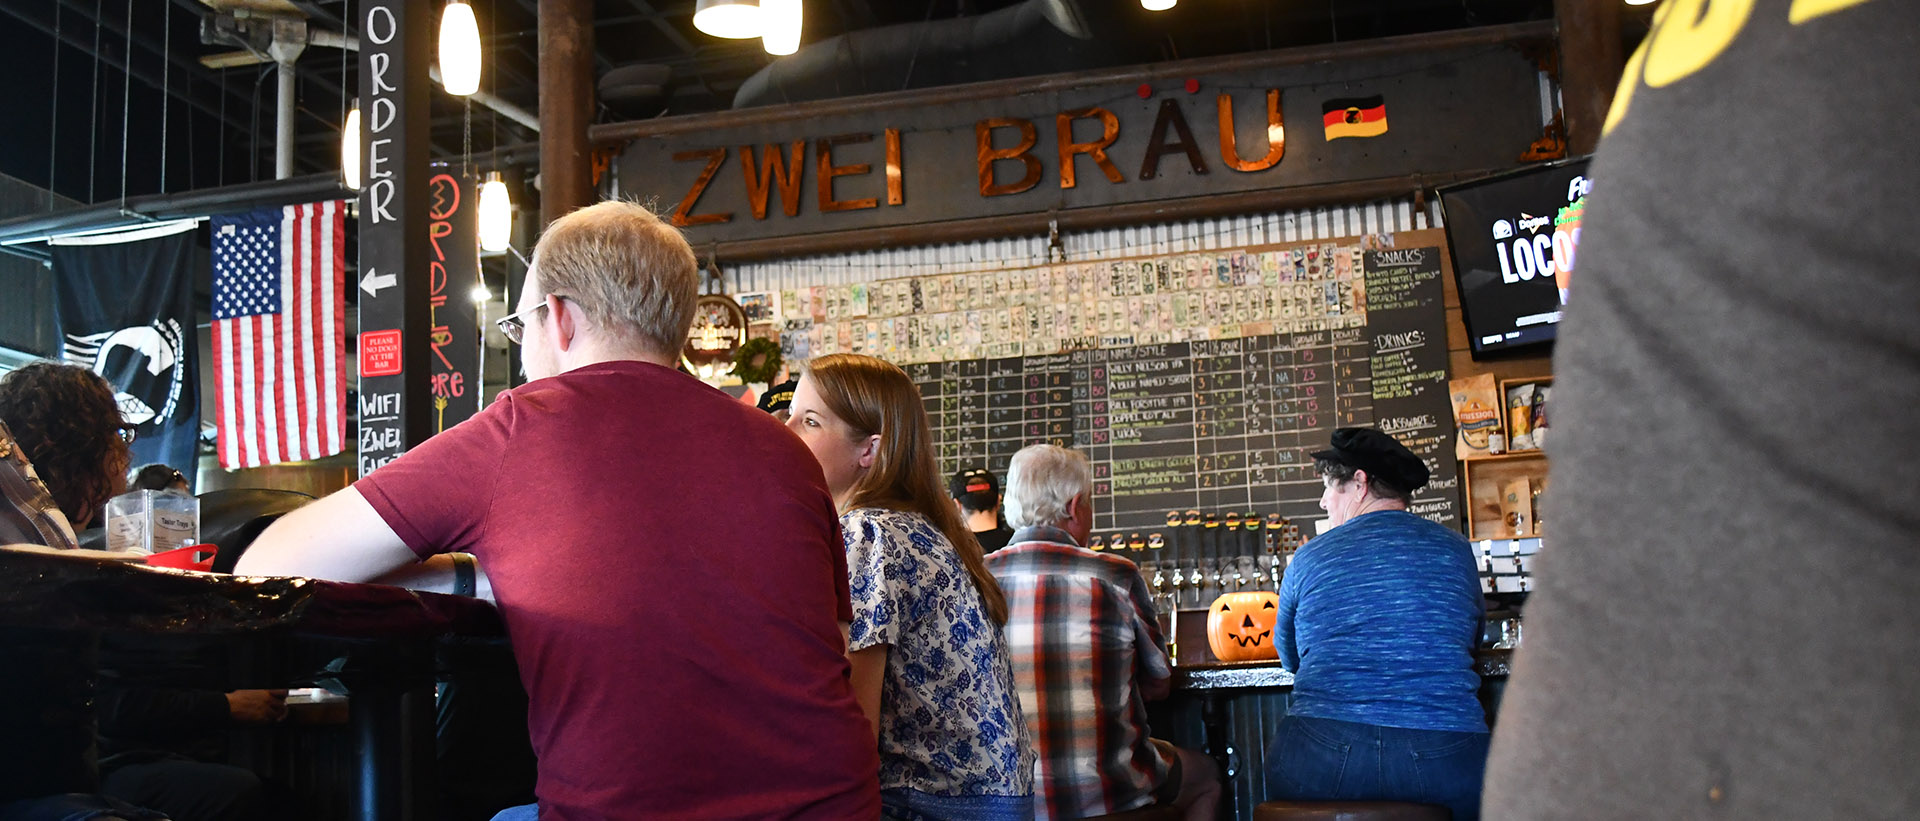 Zwei Brewing - Brewery in Fort Collins, Colorado